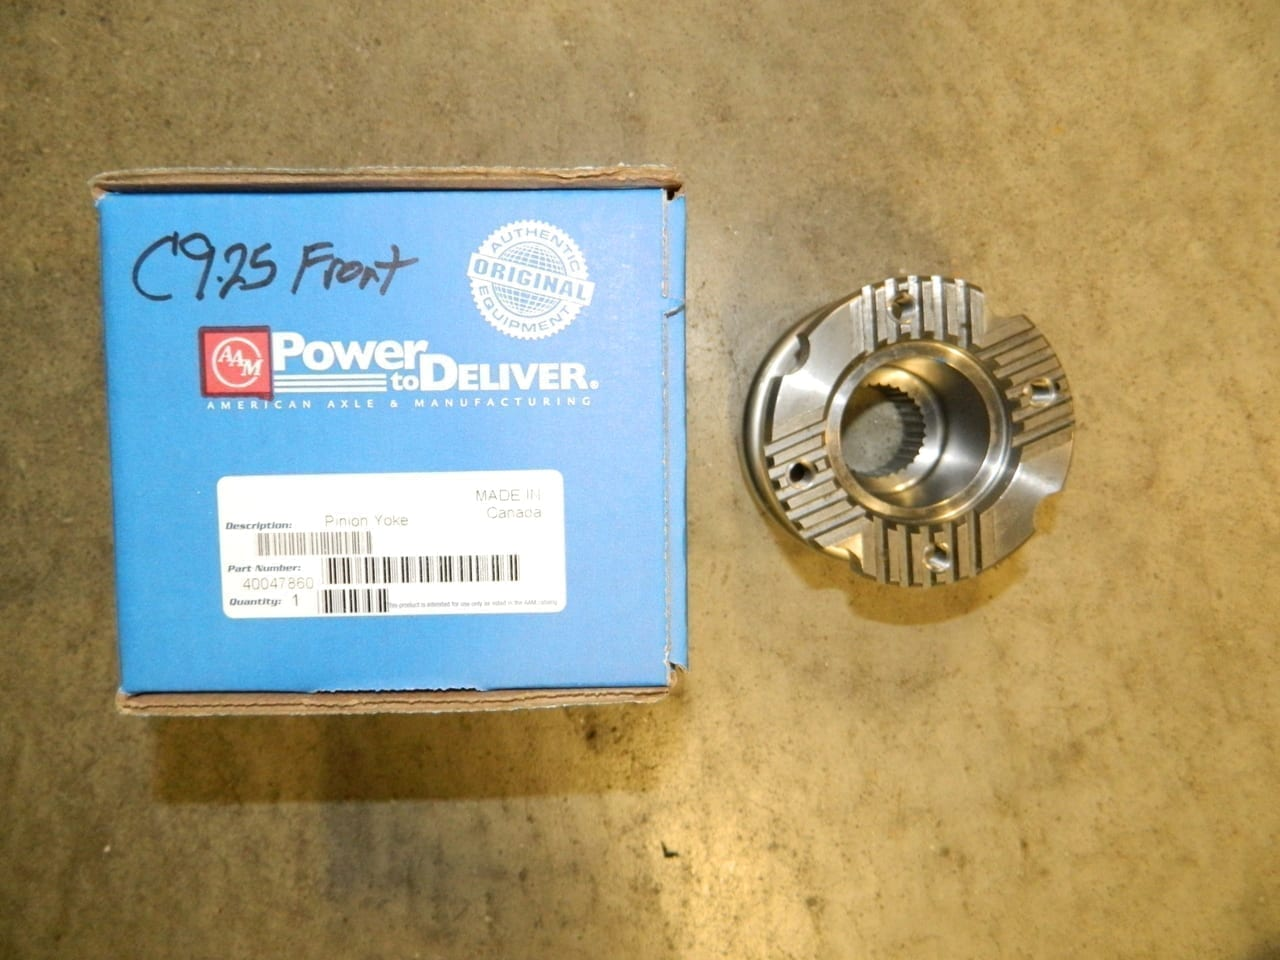 AAM Dodge 9.25 Front Differential Pinion Yoke Flange 4X4 Axle Serrated 2003+ 3/4 & 1 Ton